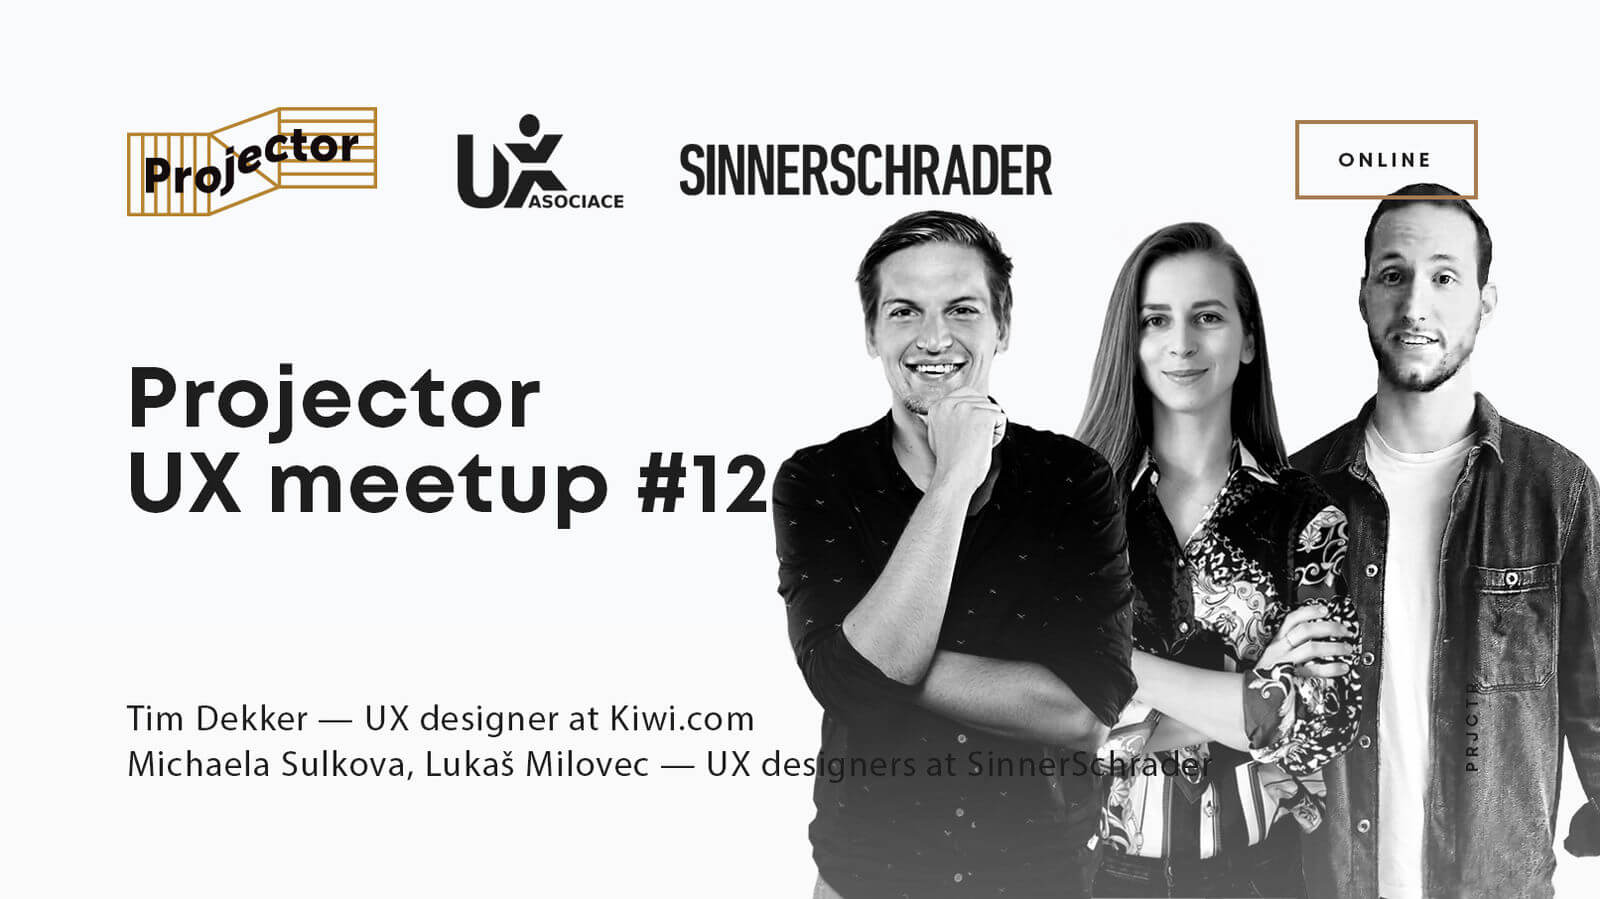 Projector UX meetup #12